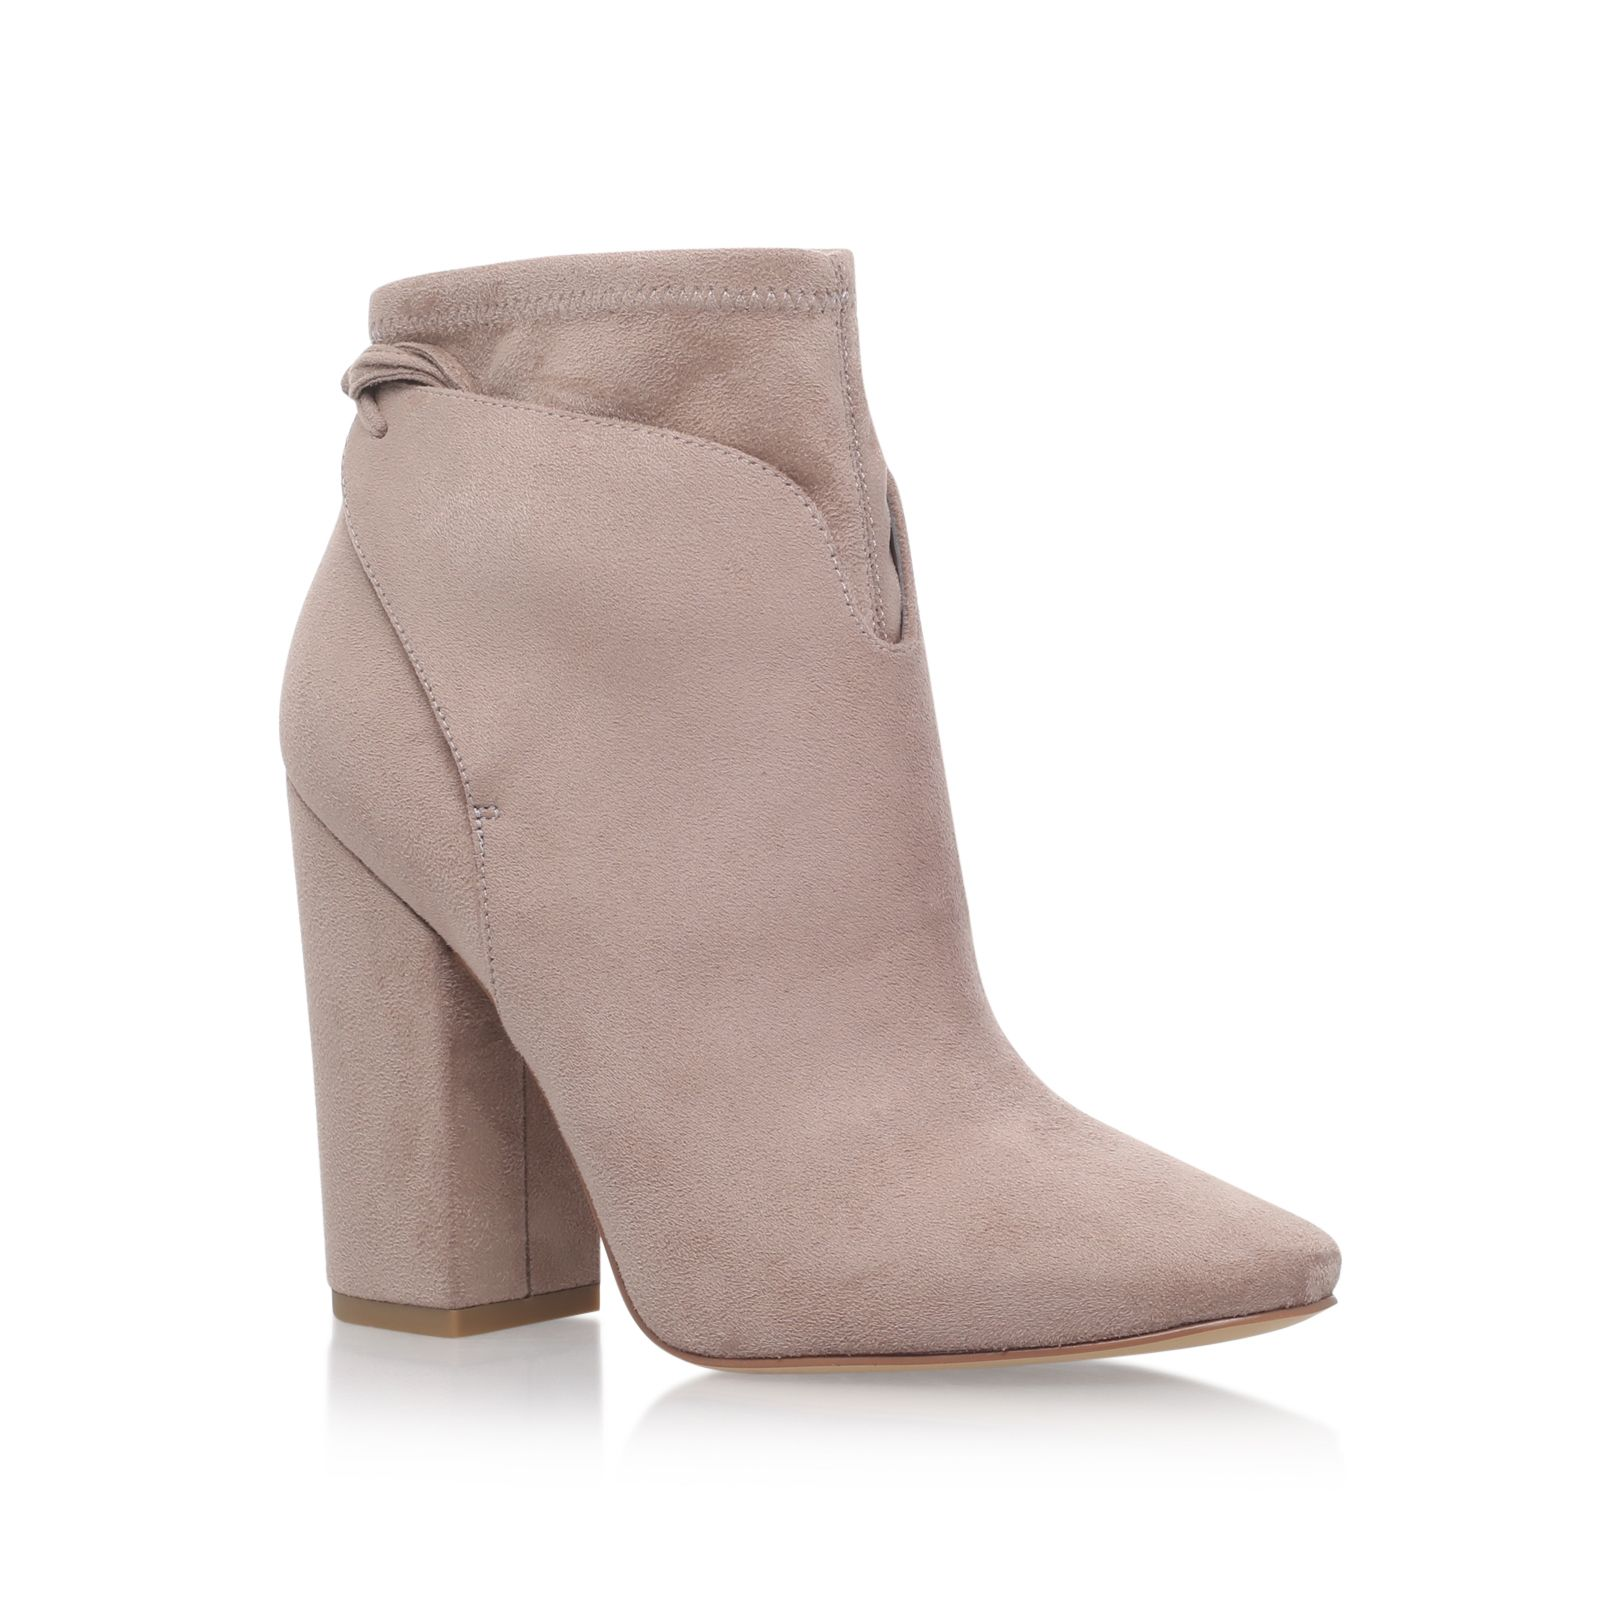 Kendall & Kylie Zola high heel ankle boots Beige